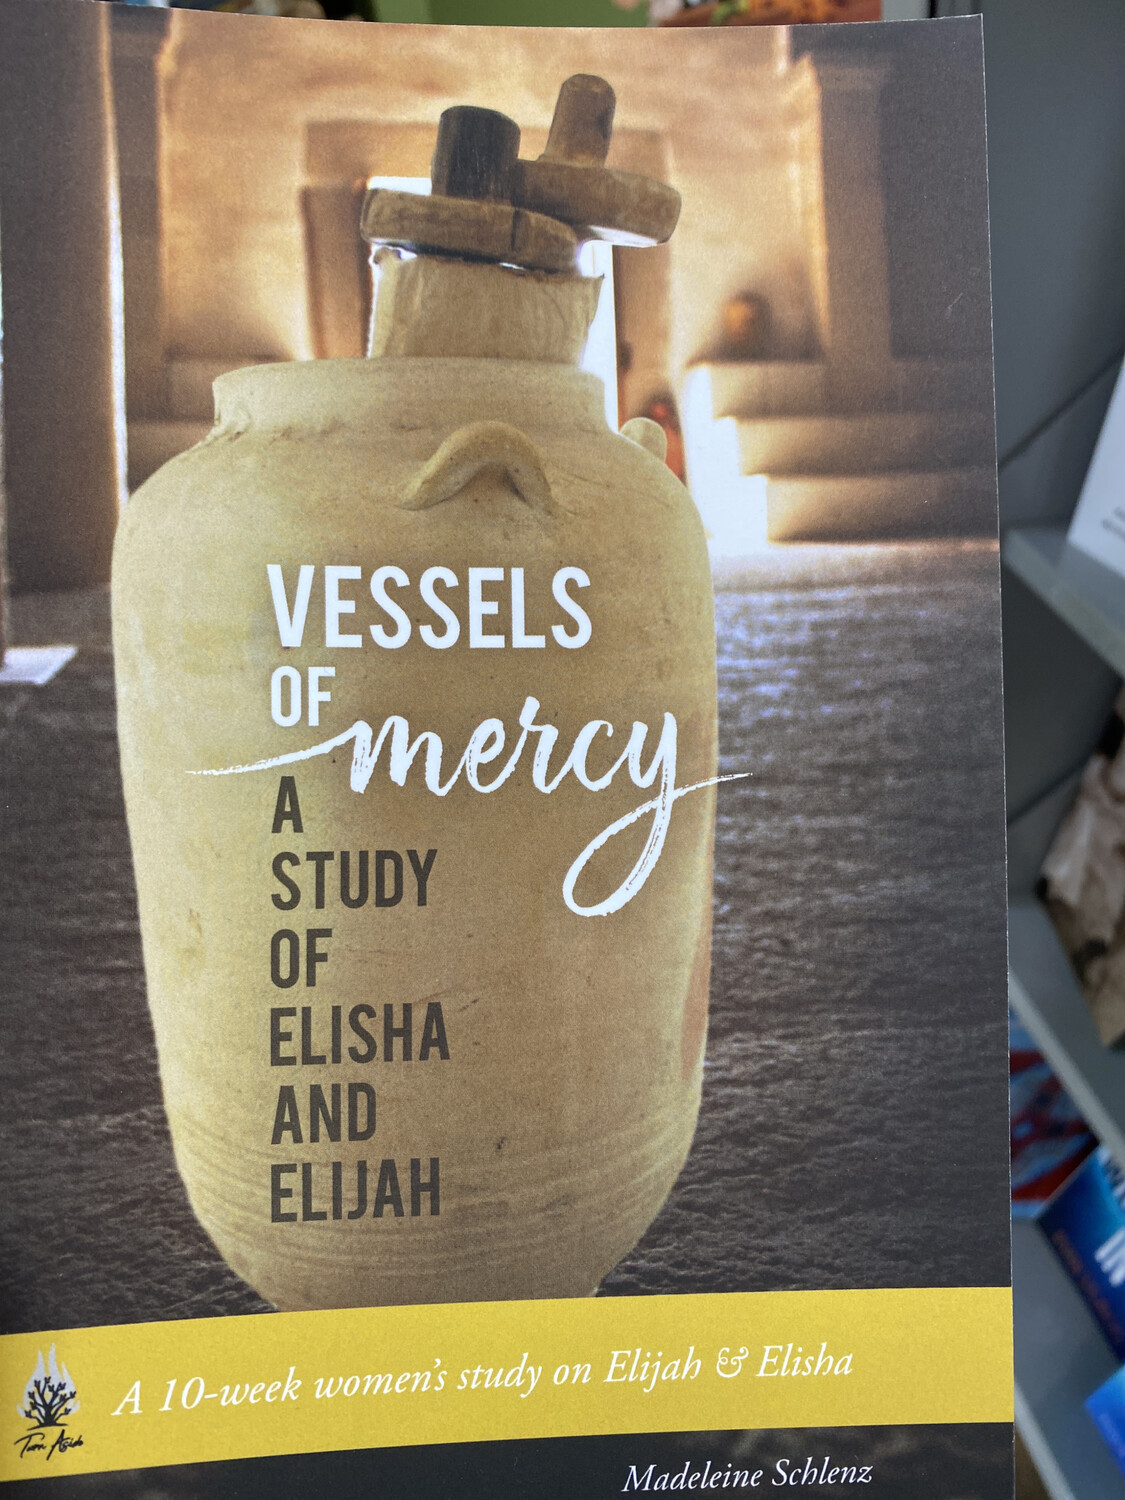 Consign, SCHLENZ - Vessels Of Mercy, Study Of Elisha and Elisha